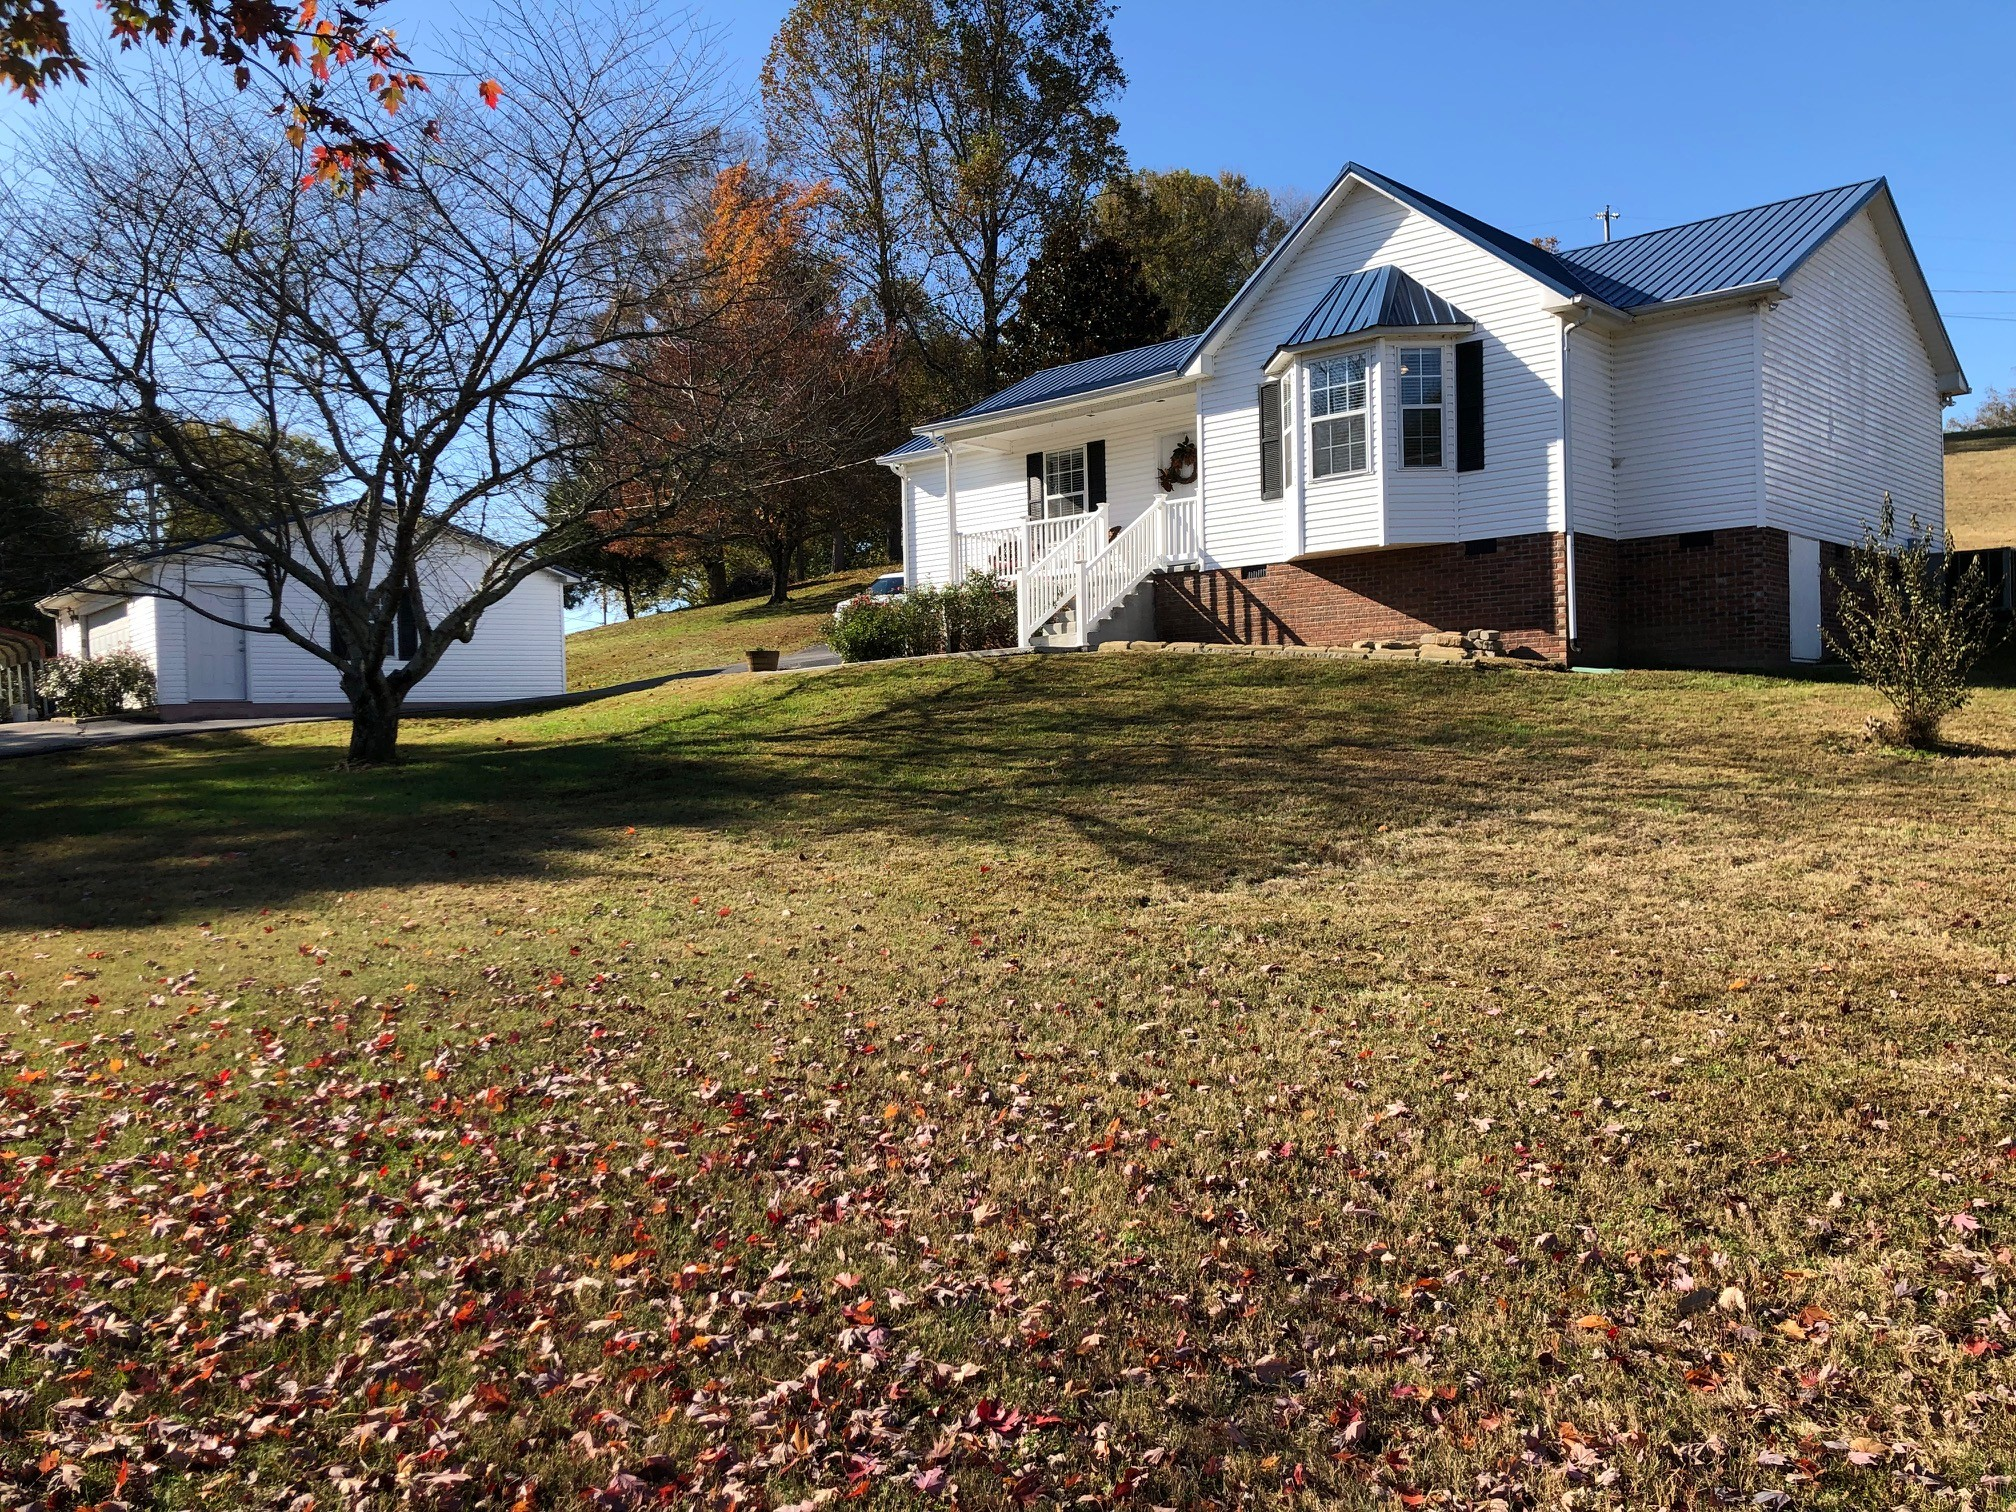 2315 Pumpkin Creek Ln, Spring Hill in Maury County County, TN 37174 Home for Sale